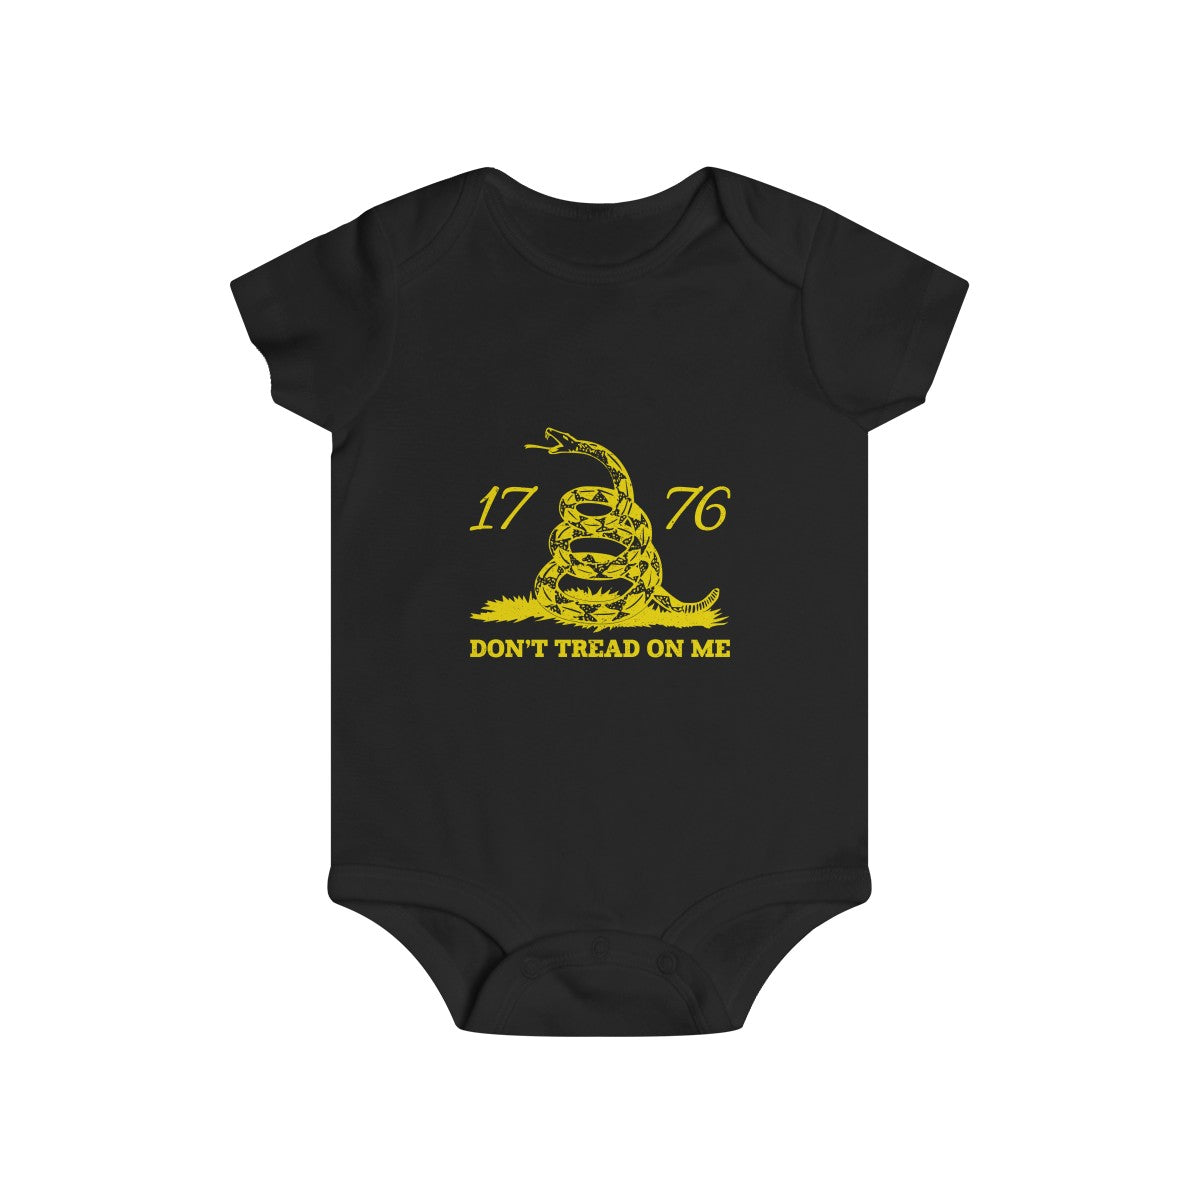 Don't Tread on Me Infant Rip Snap Tee